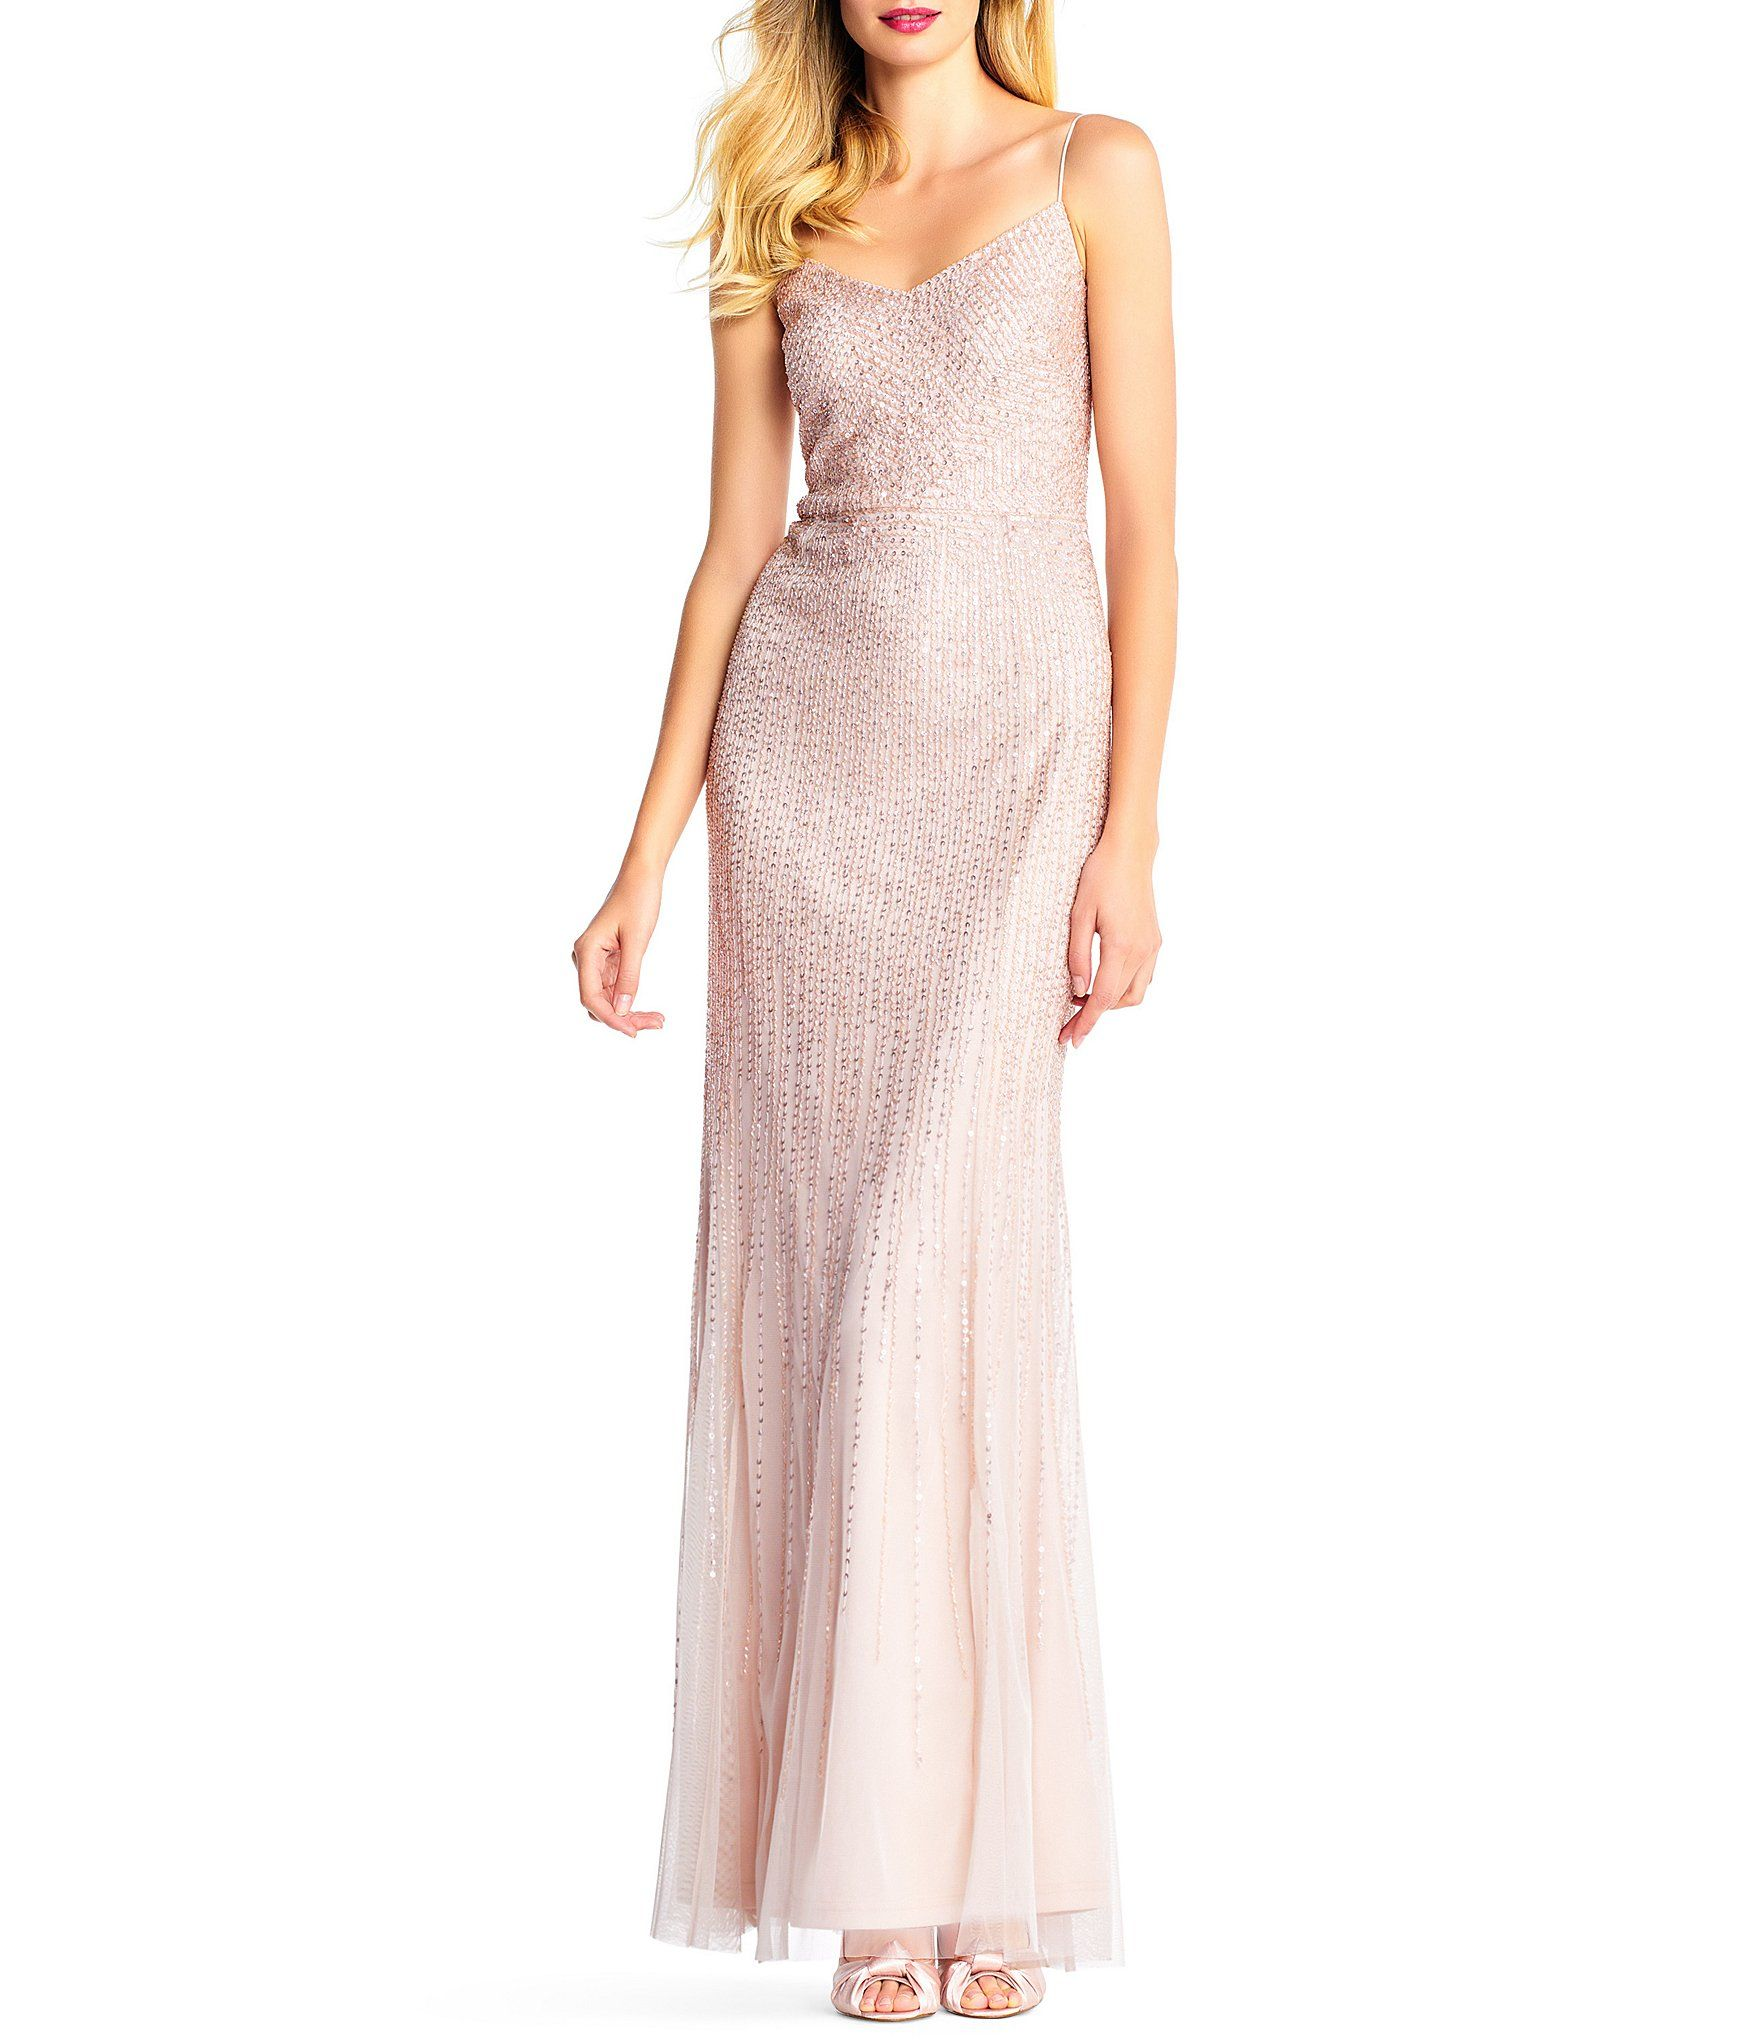 c0adfd5ffda Shop for Adrianna Papell All Over Beaded Dress at Dillards.com. Visit  Dillards.com to find clothing